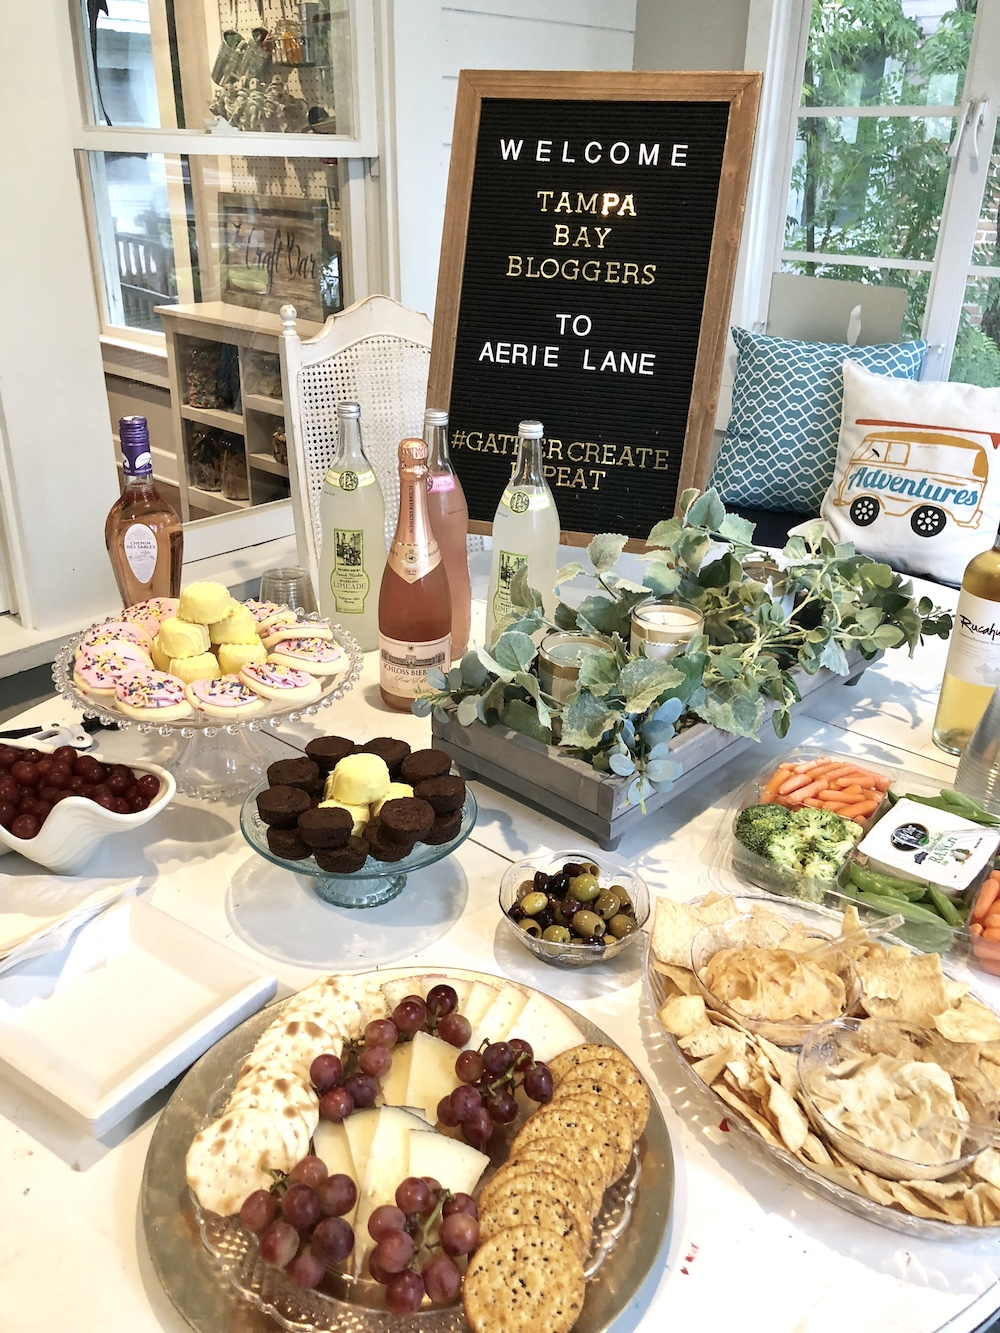 Aerie Lane for Private Events